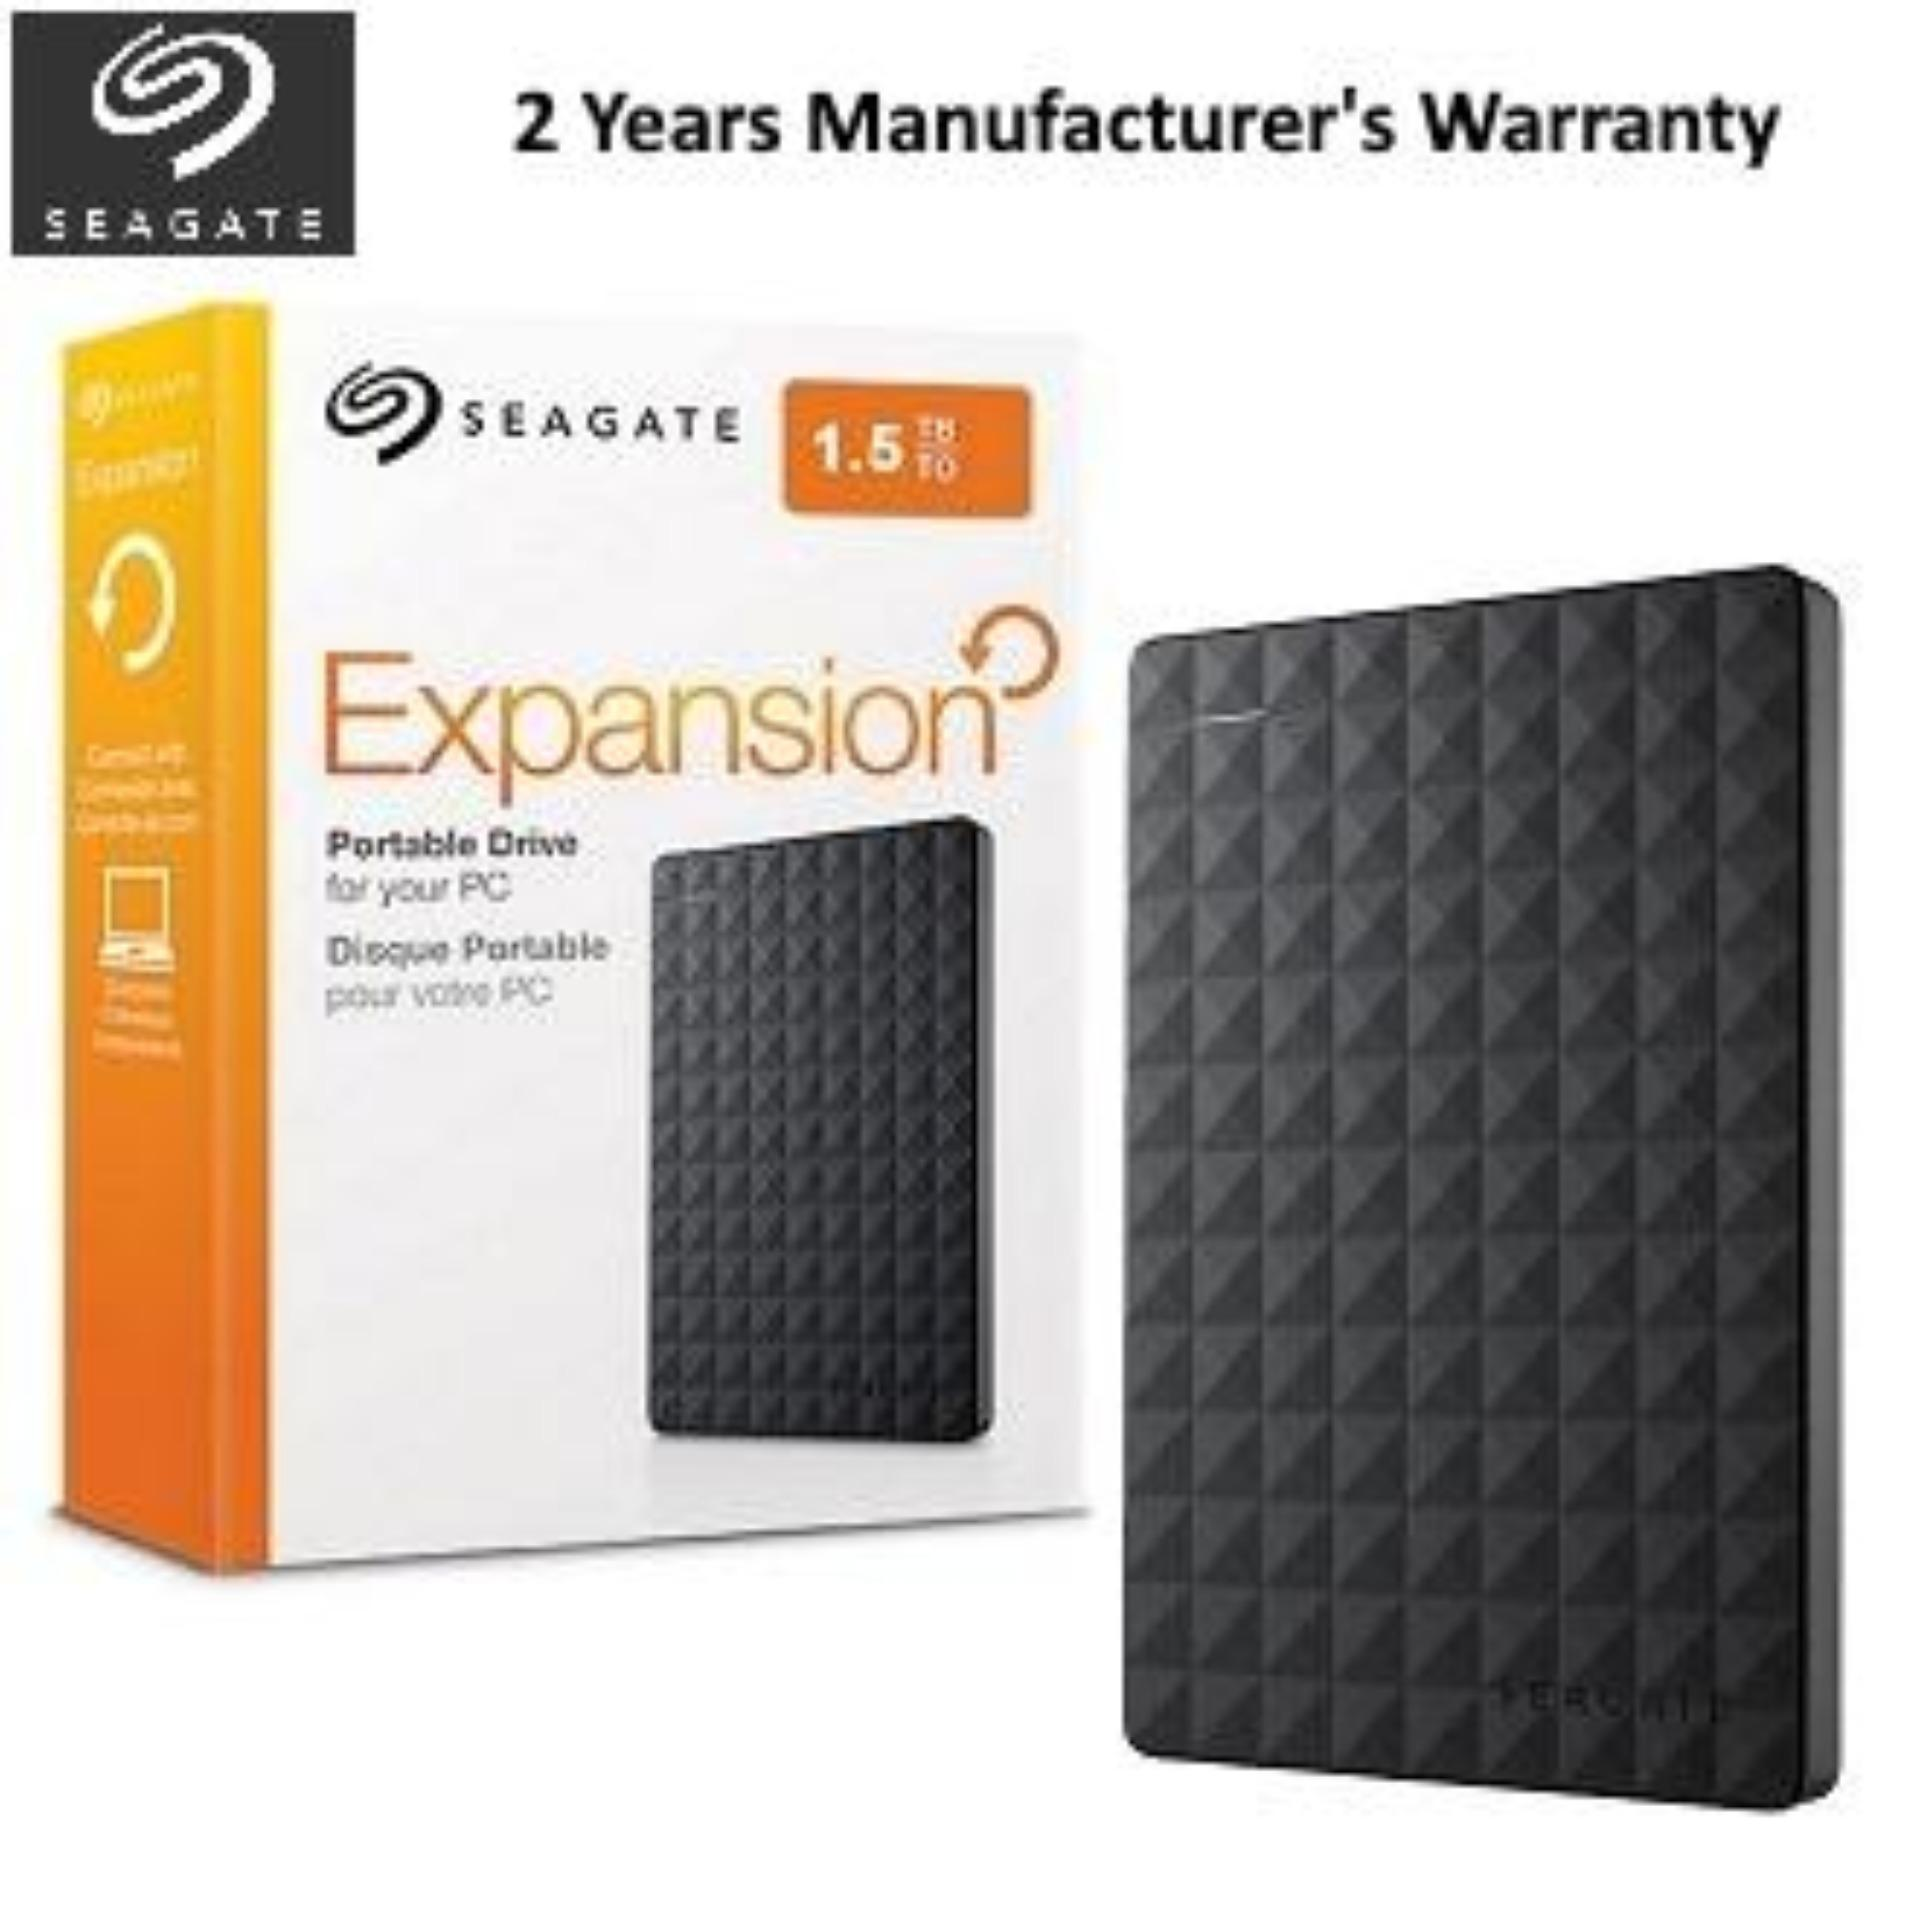 STEA1500400 - Expansion Portable USB 3.0 External Hard Drive - 1.5TB - Black e4833f7fb